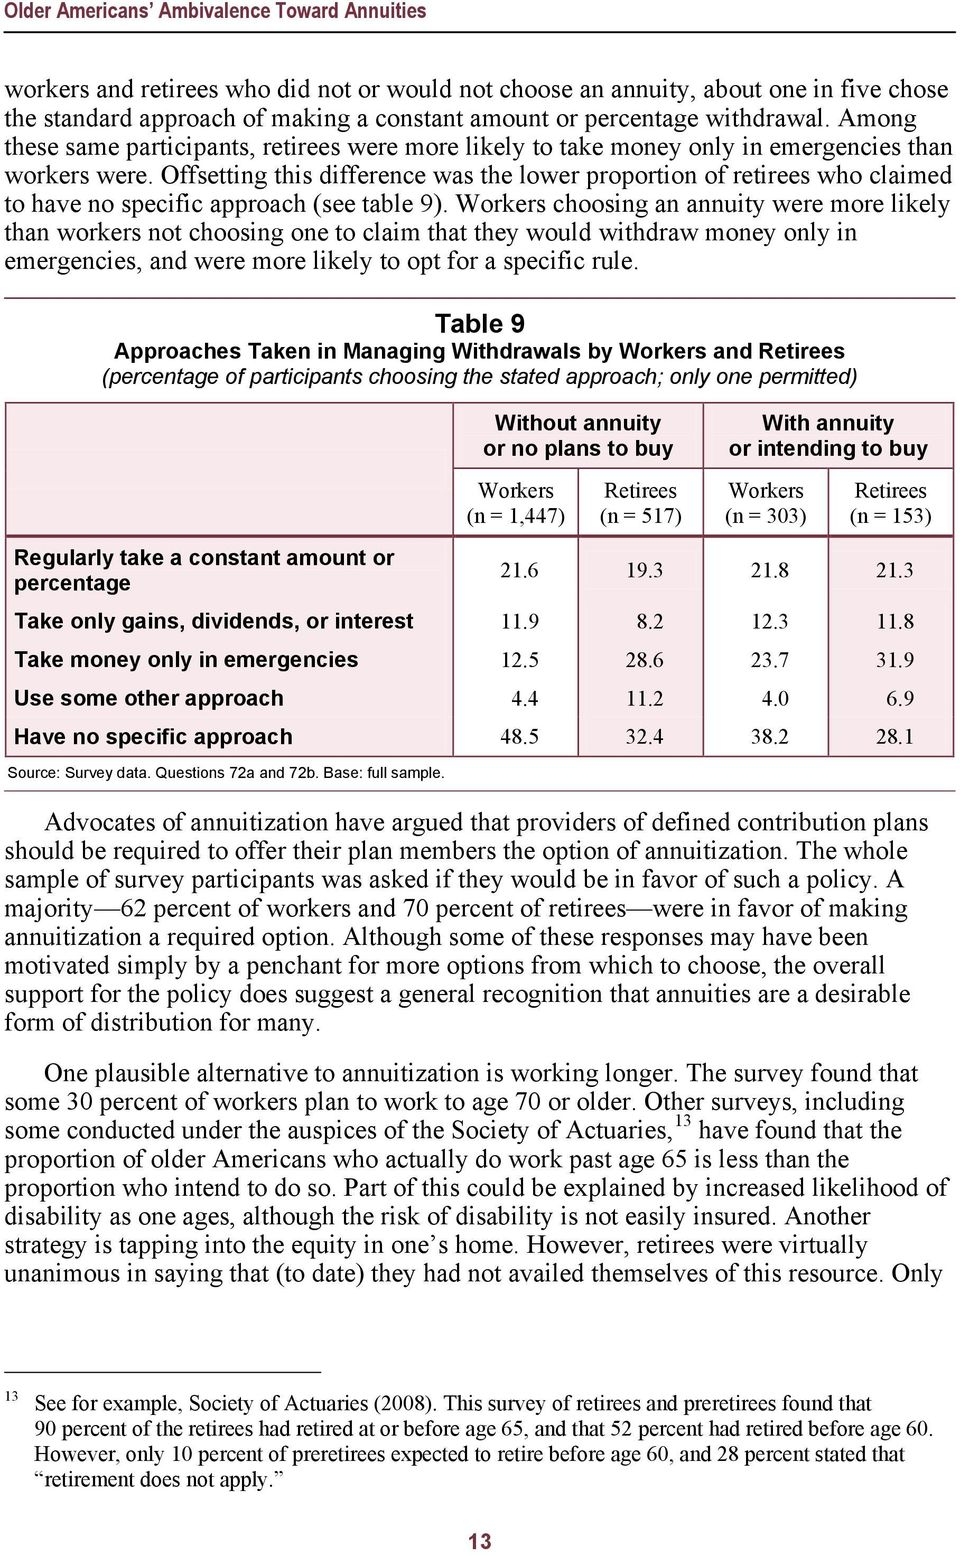 Offsetting this difference was the lower proportion of retirees who claimed to have no specific approach (see table 9).